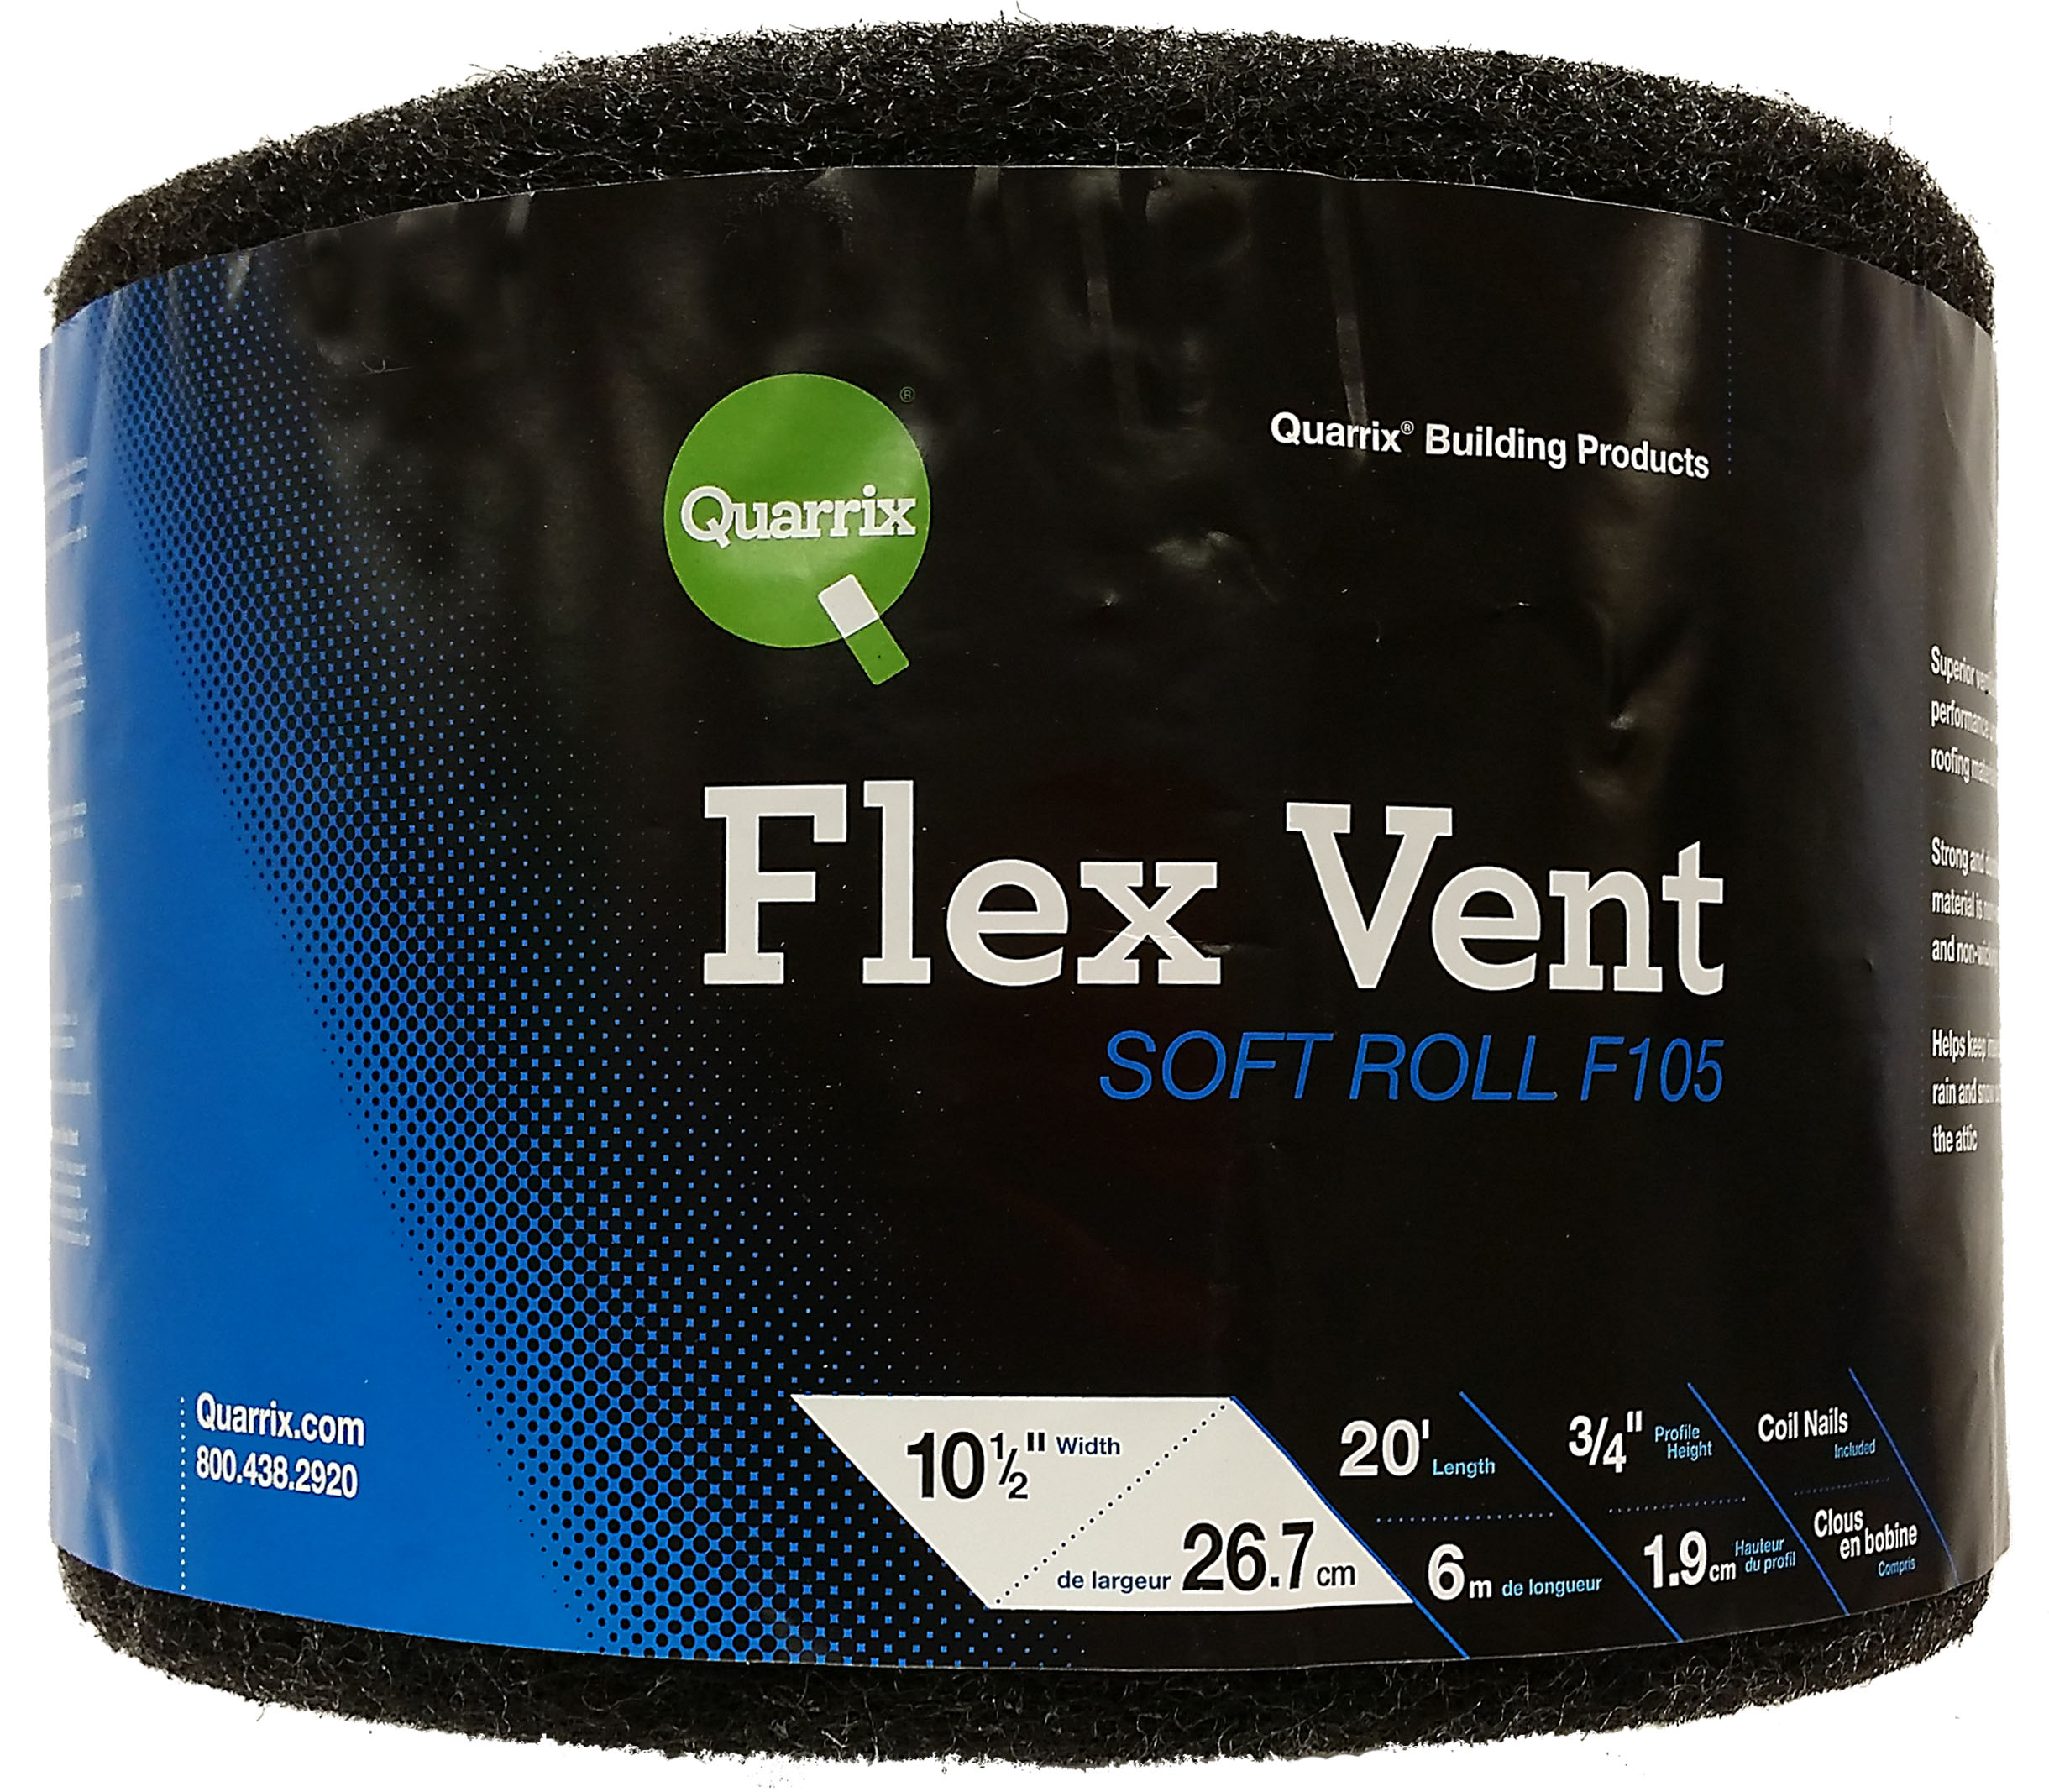 New Flex Vent Soft Roll From Quarrix Building Products